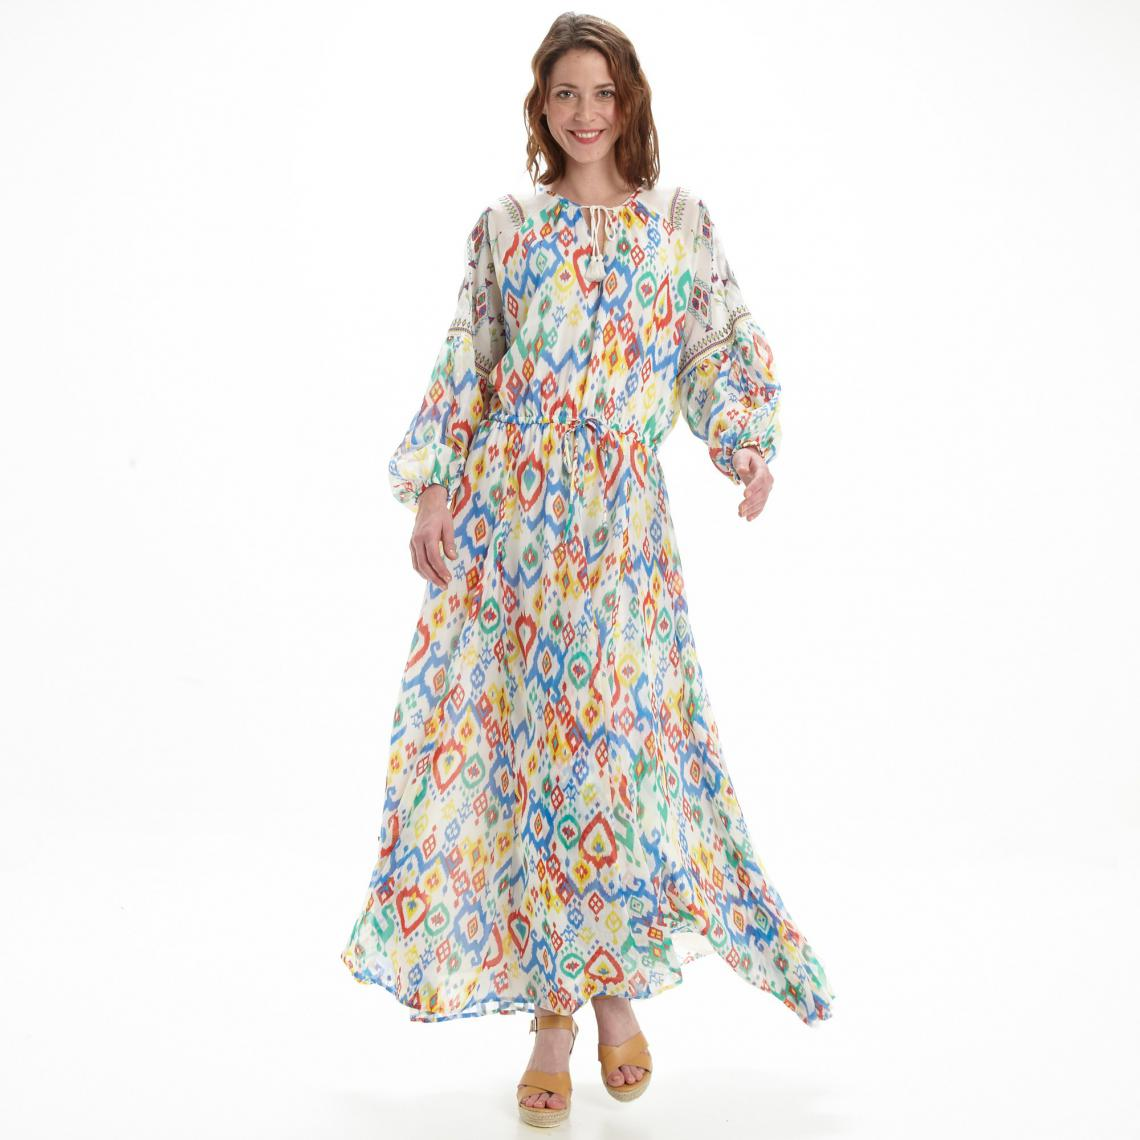 7e1efeda2a0 Robe longue manches longues femme Pepe Jeans - Multicolore Pepe Jeans Femme